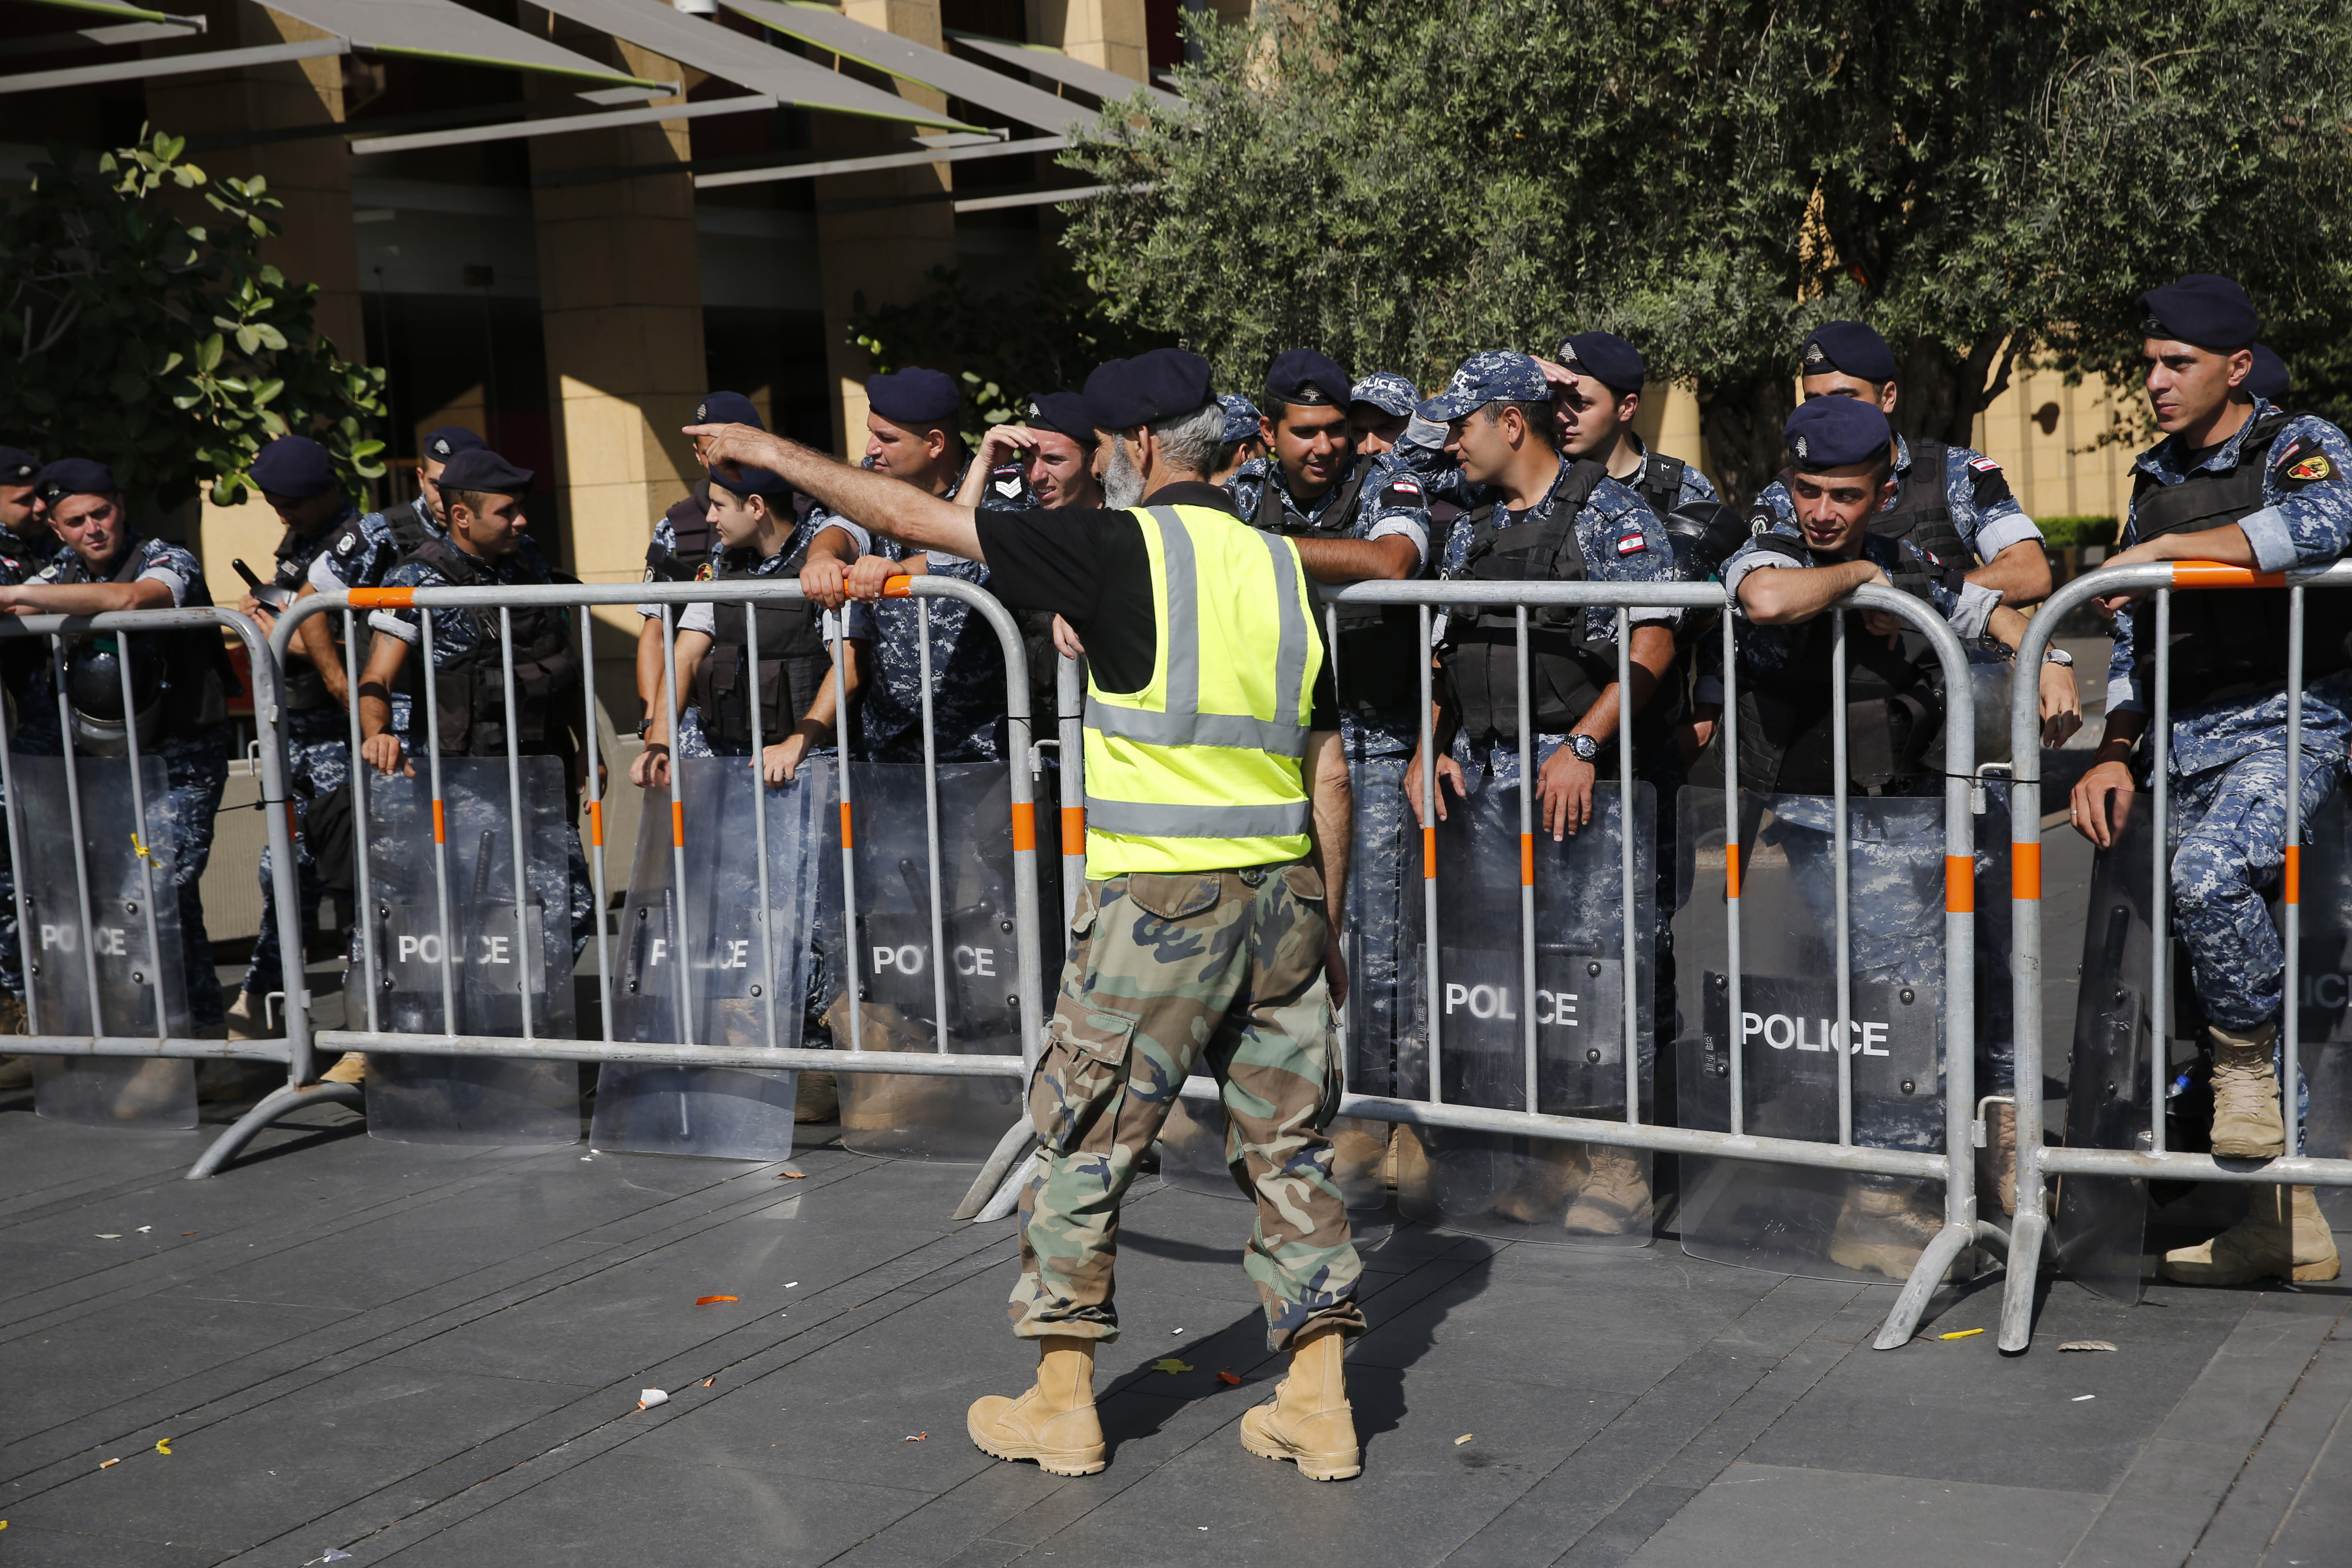 A retired Lebanese retired soldier, in yellow vest, protests in front of riot police who blocked a road leading to the parliament building where lawmakers and ministers are discussing the draft 2019 state budget, in Beirut, Lebanon, Tuesday, July 16, 2019. The lawmakers have begun discussing the budget amid tight security and limited protests against proposed austerity measures. The proposed budget aims to avert a financial crisis by raising taxes and cutting public spending in an effort to reduce a ballooning deficit. (AP Photo/Hussein Malla)